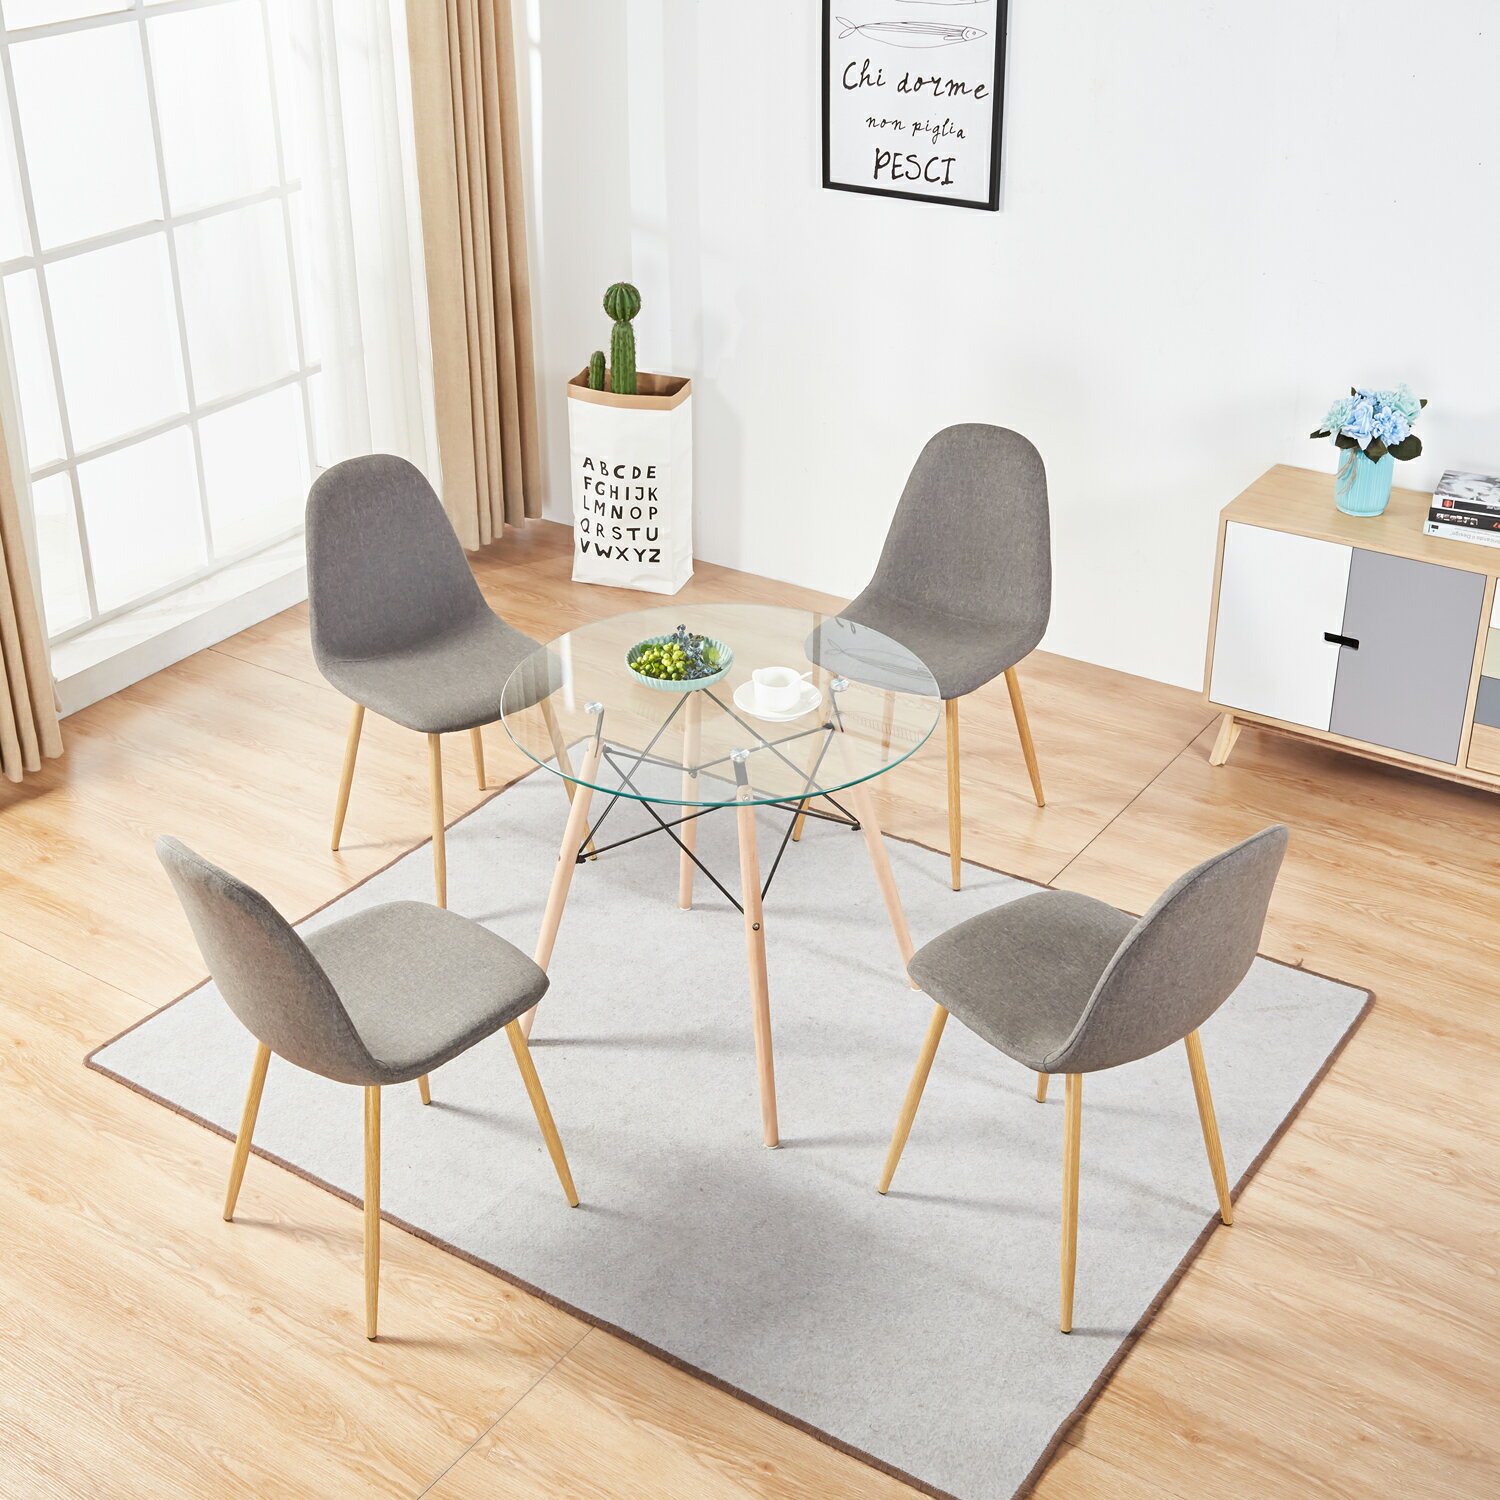 Mcombo Mcombo Dining Side Chairs Set Of 4 Dining Table Round Clear Glass Table For Kitchen Dining Room Rakuten Com